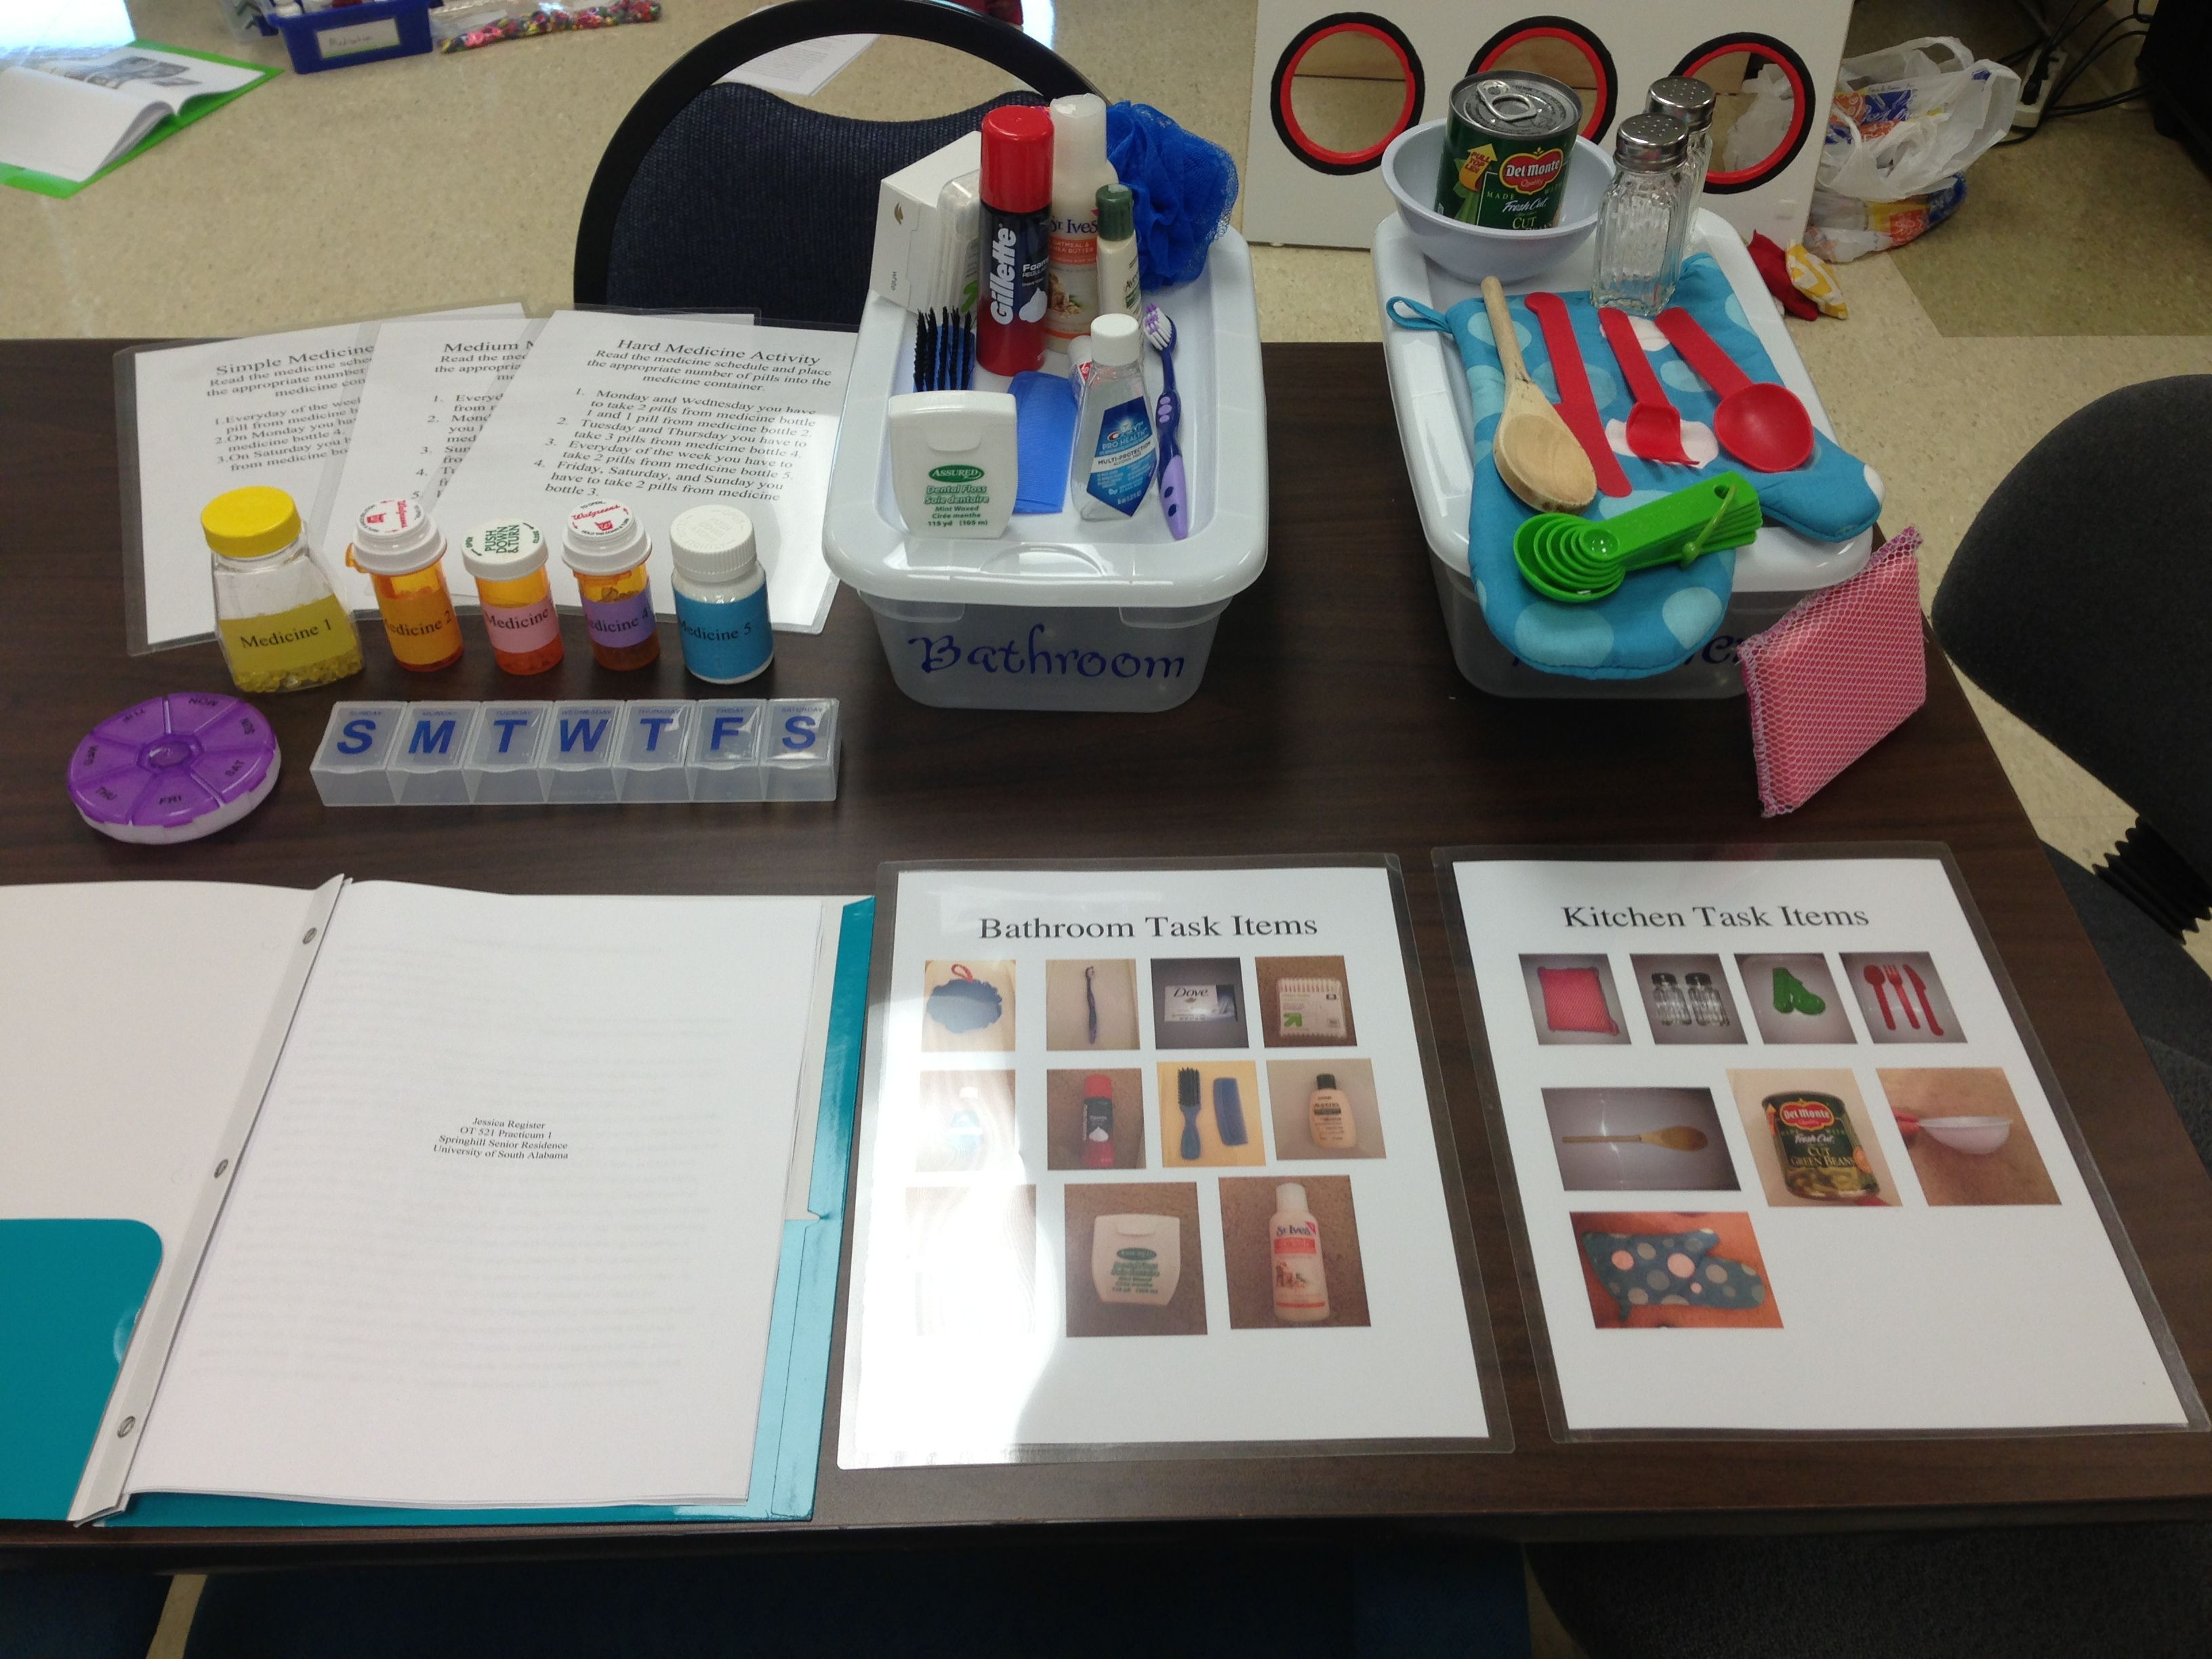 Sorting activity focusing on ADLs Kitchen and bathroom items